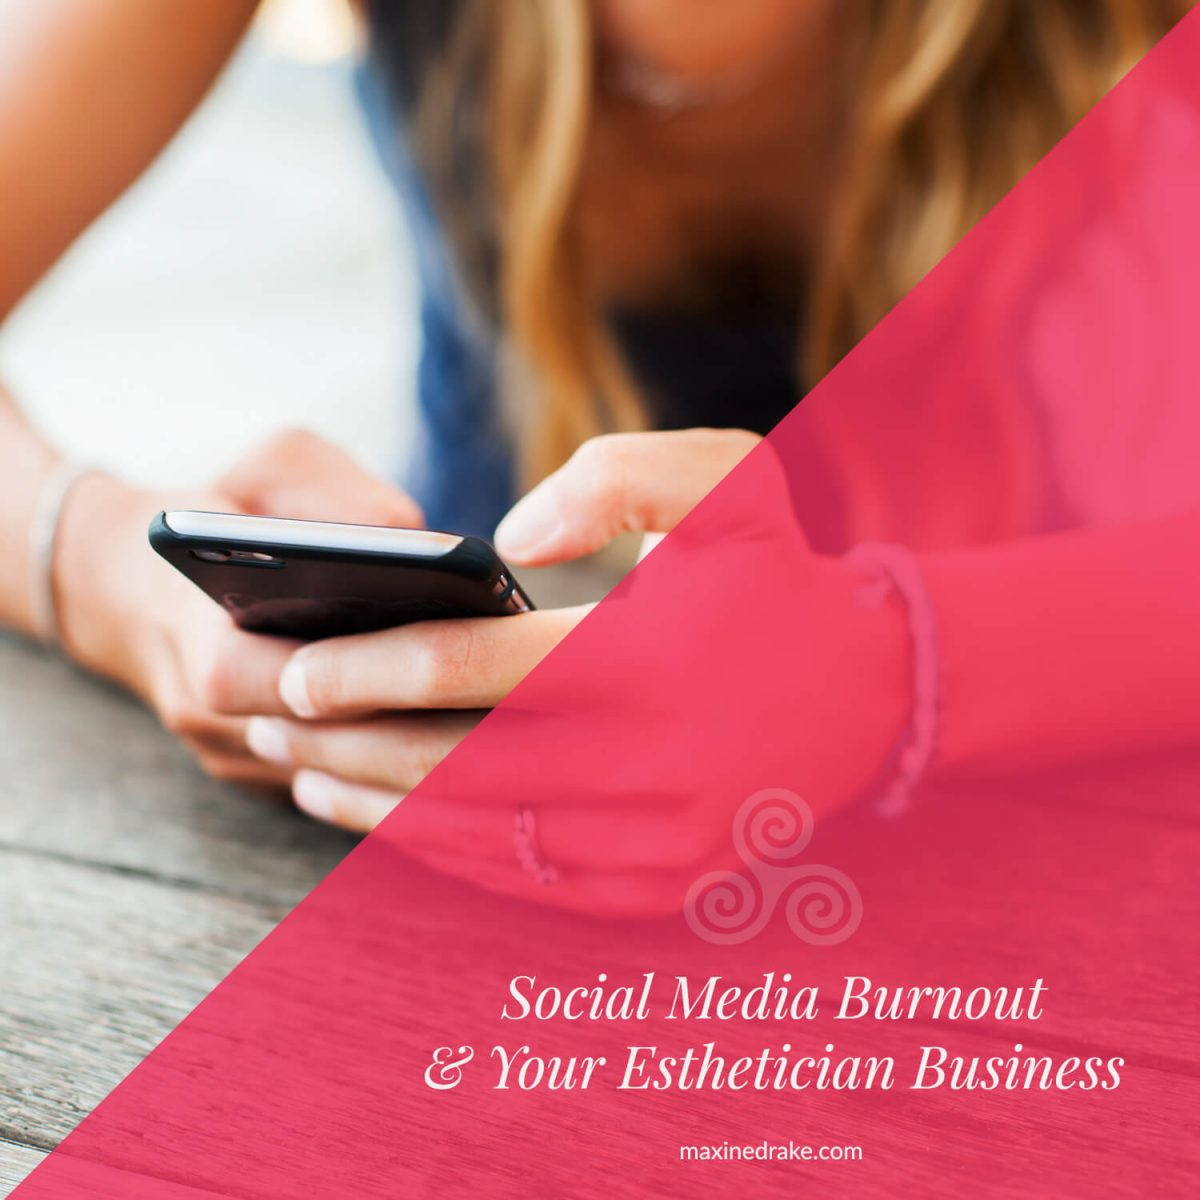 maxine drake social media burnout and your esthetician business